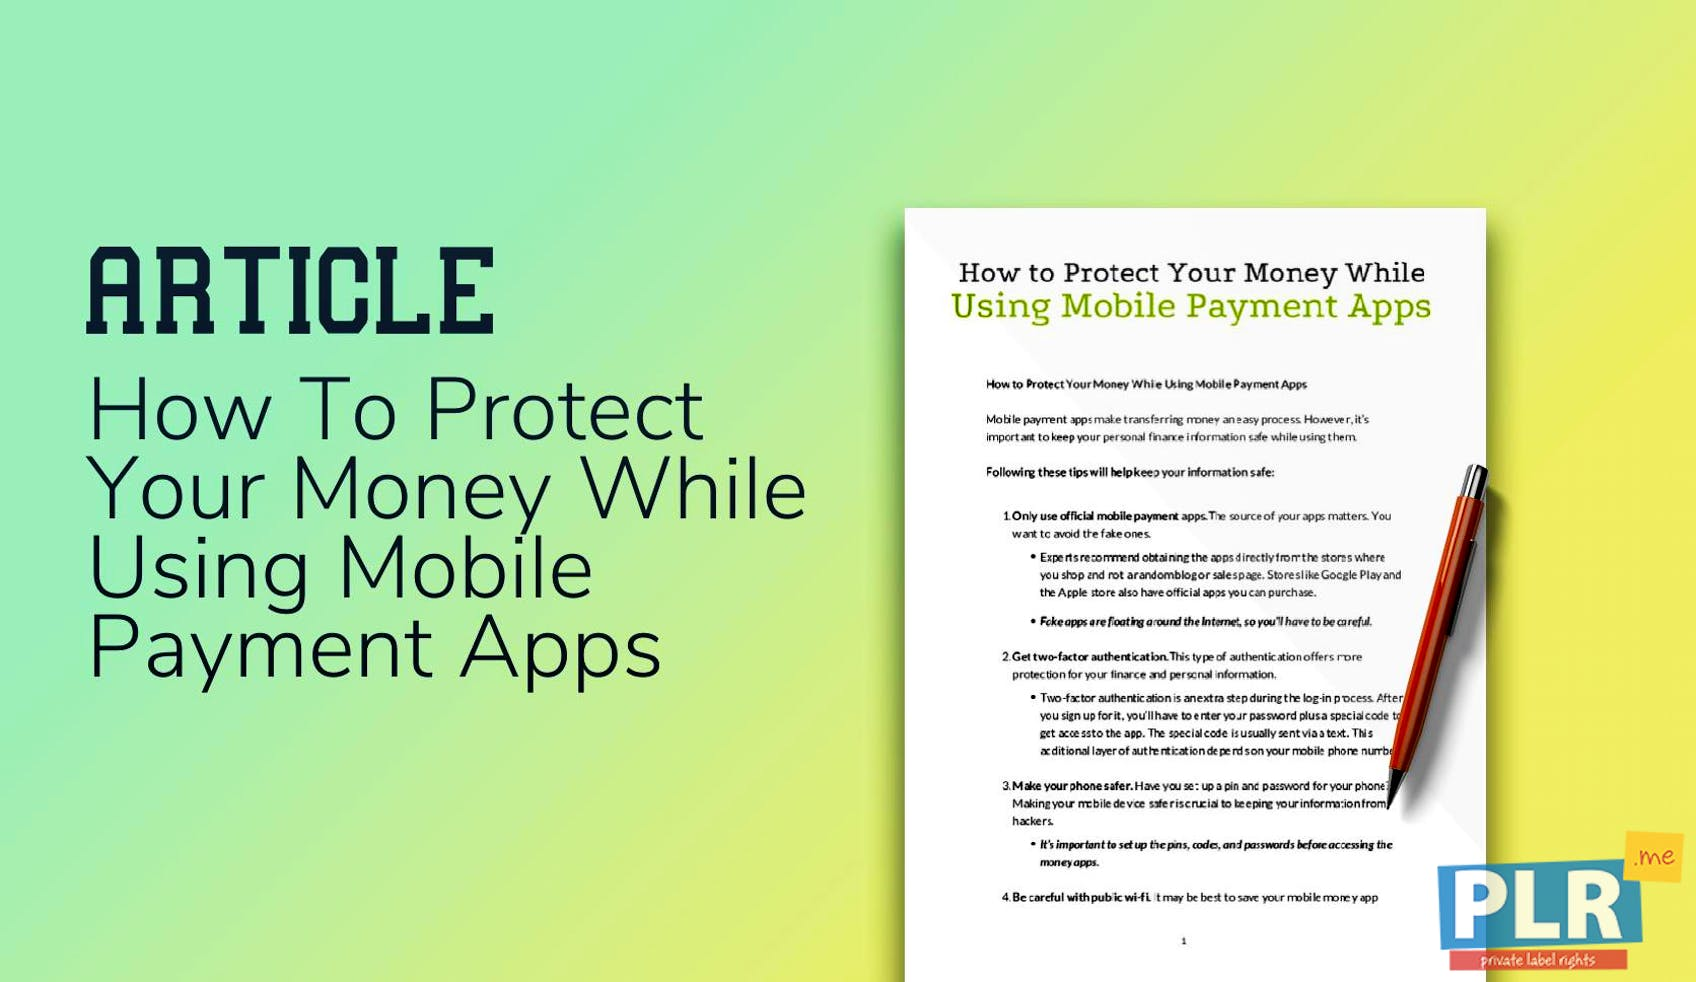 How To Protect Your Money While Using Mobile Payment Apps